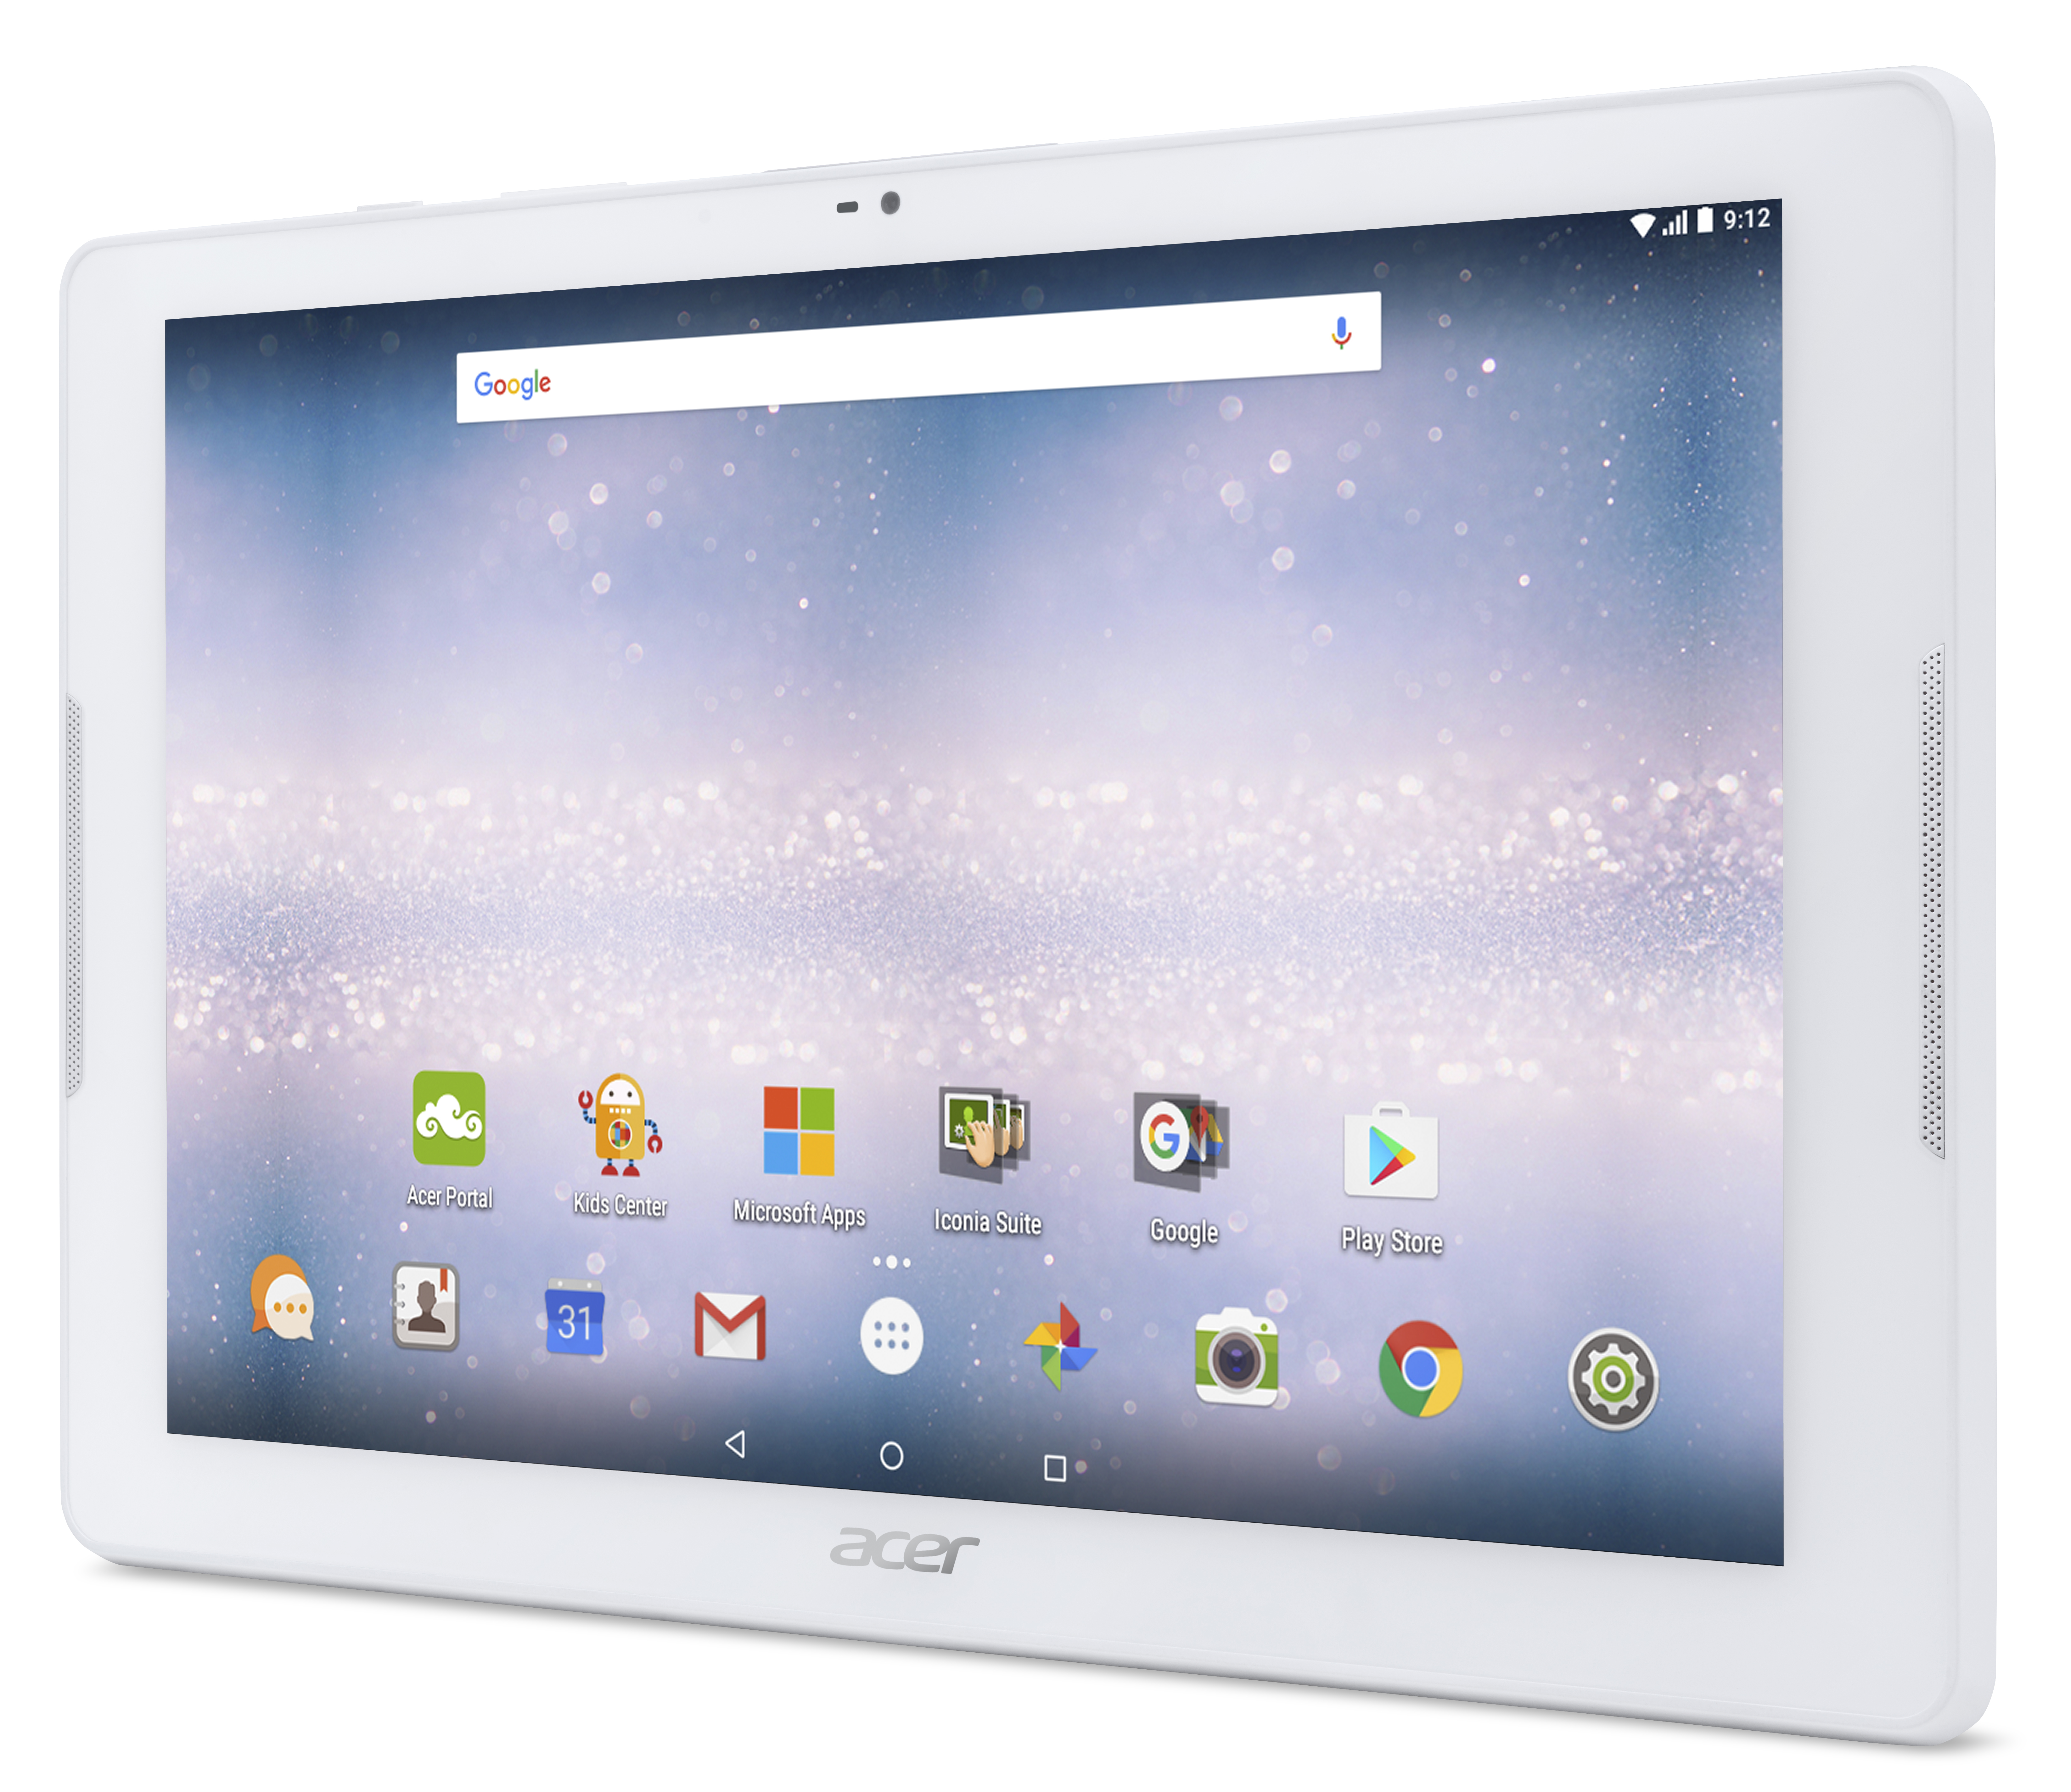 Acer-NT-LDEEE-002-Iconia-B3-A32-K221-16GB-3G-4G-White-tablet-10-1-034-IPS-1280-x